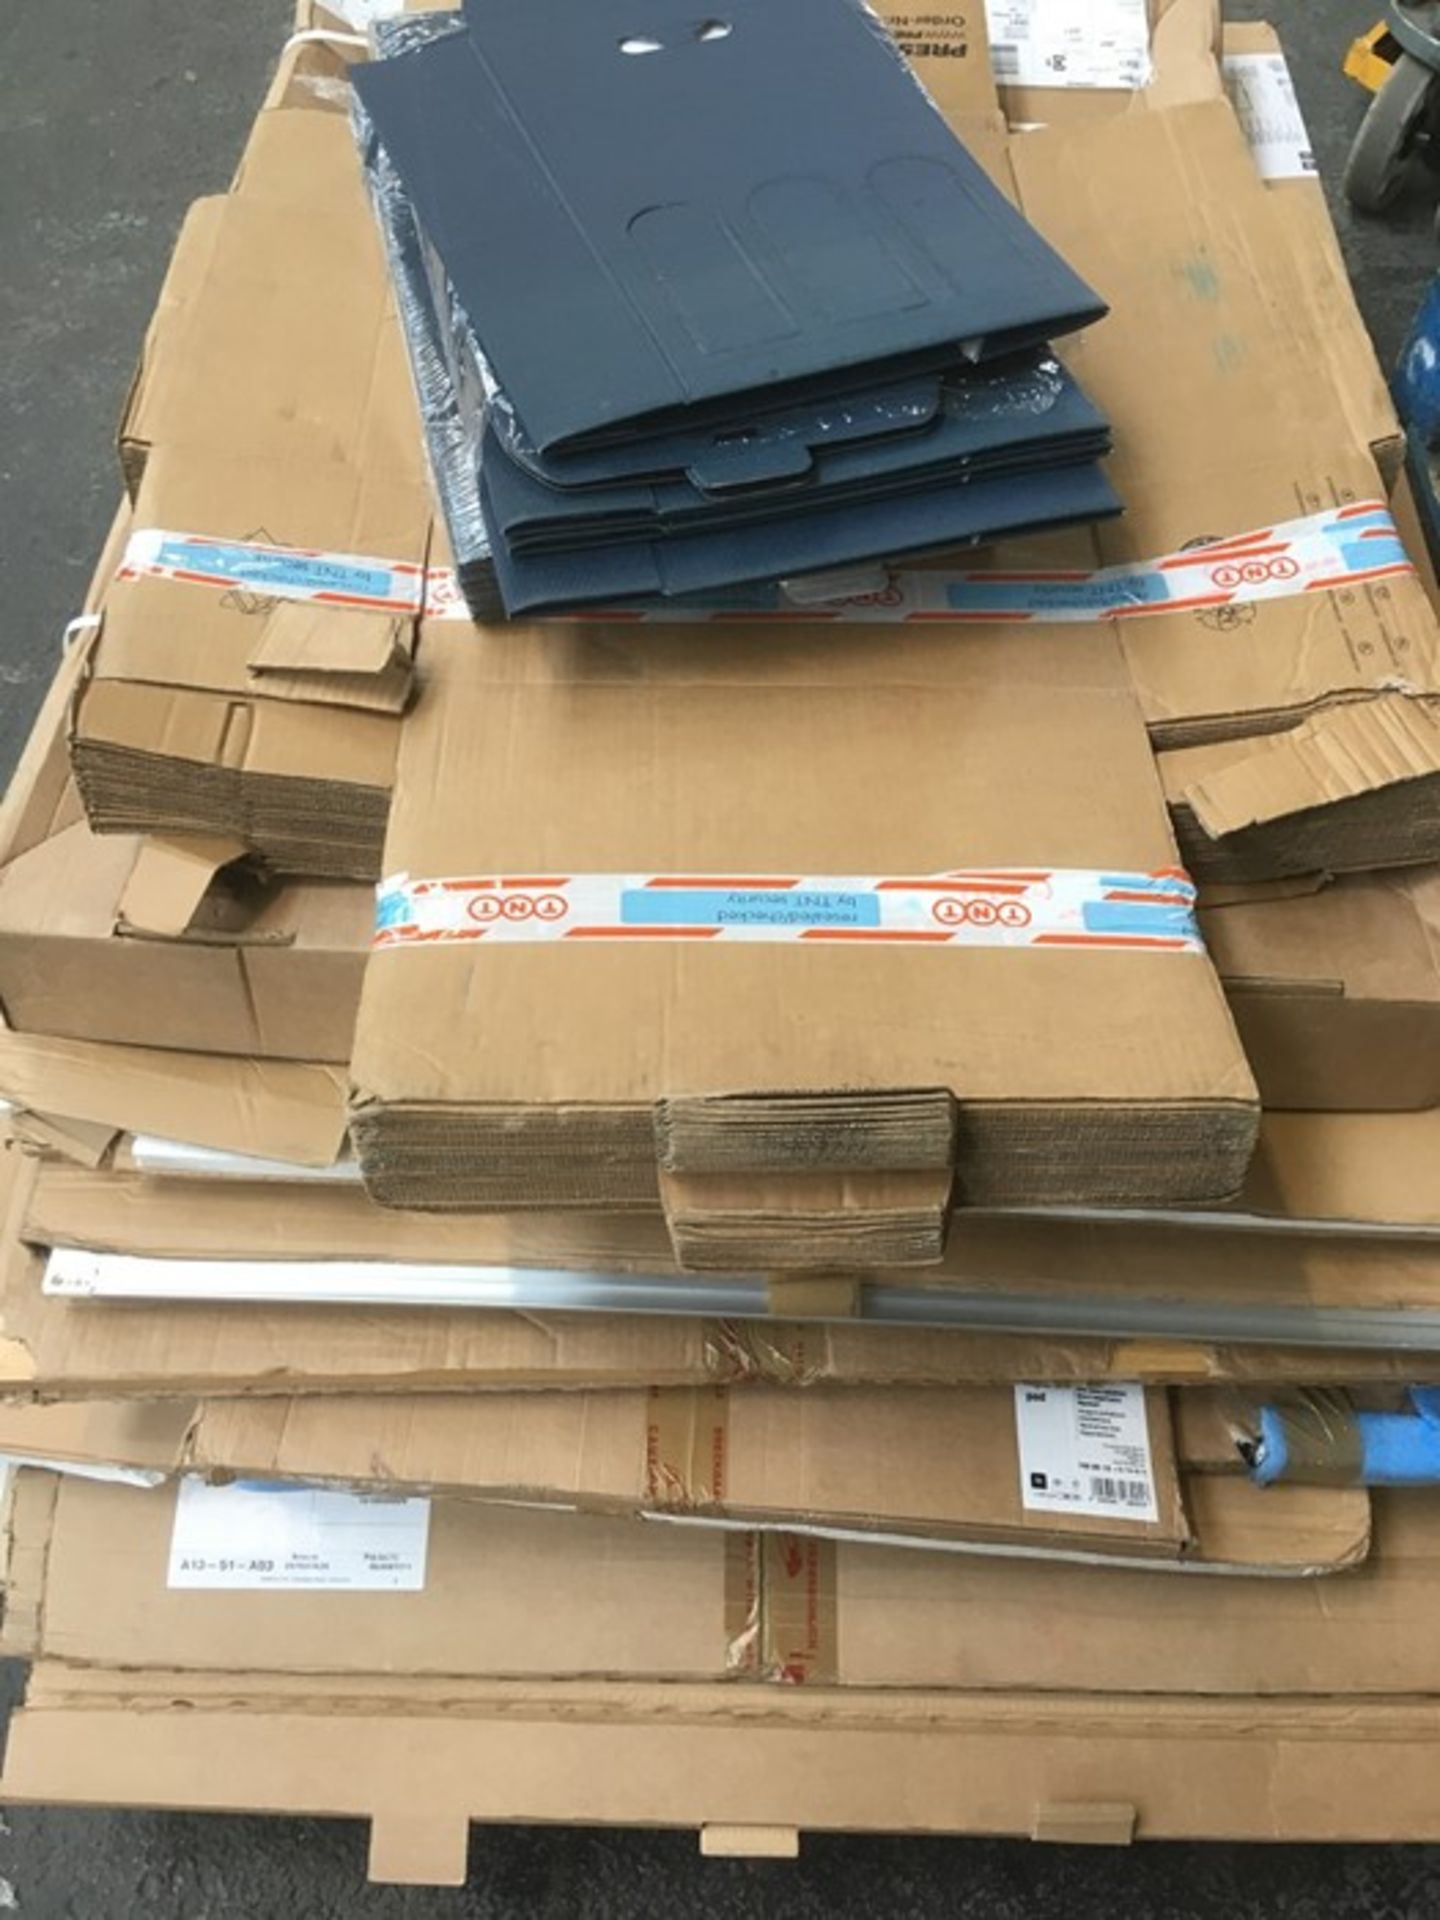 Lotto 98 - 1 LOT TO CONTAIN ASSORTED NOTICE BOARDS, WHITE BOARDS, FLIP EASLES AND CARDBOARD BOXES / SIZE,